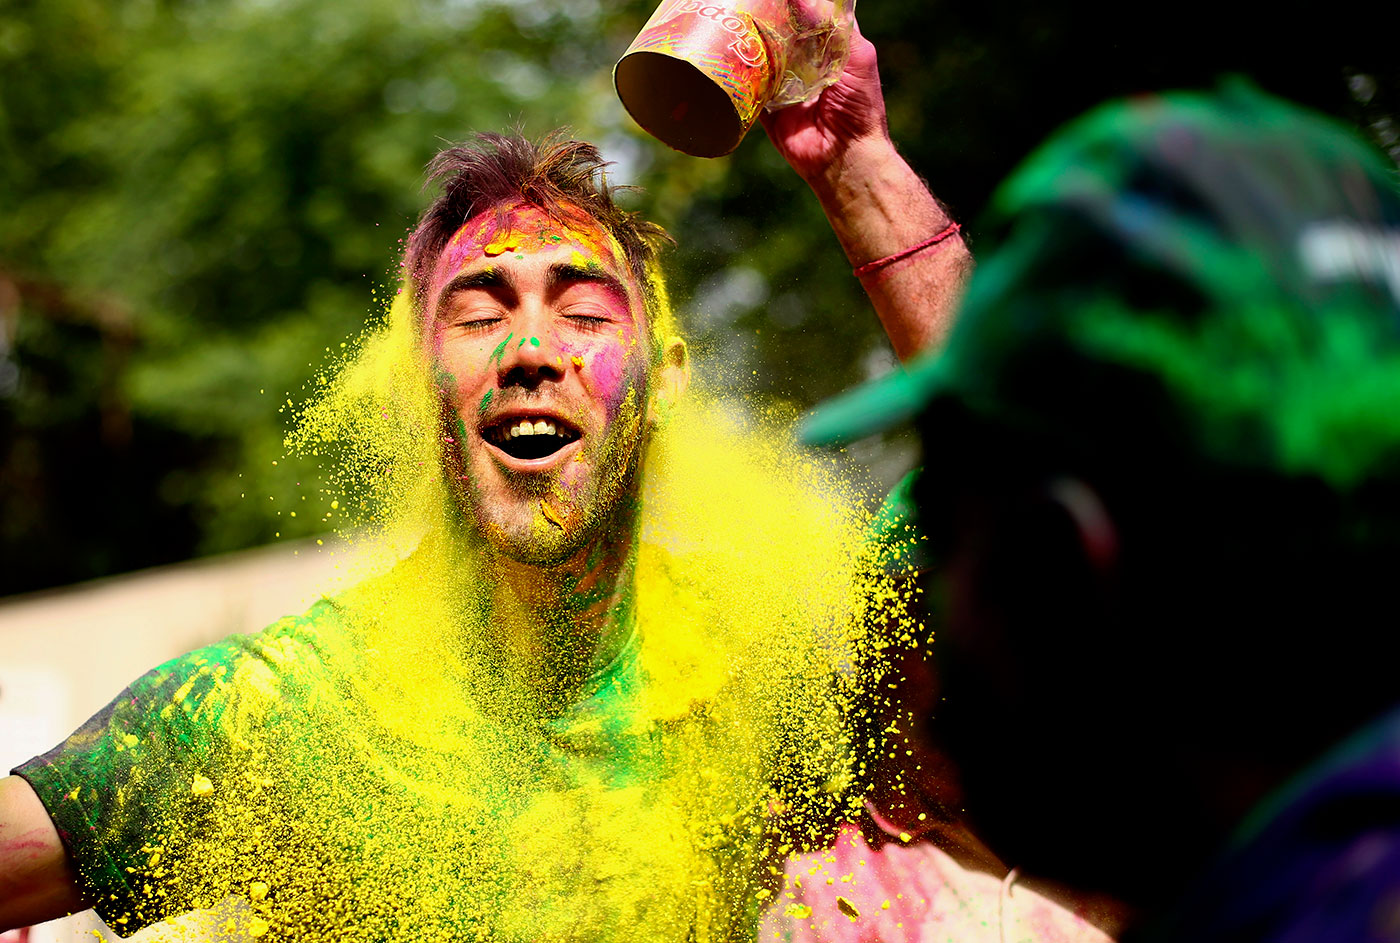 Glenn Maxwell soaks in the colours of Holi